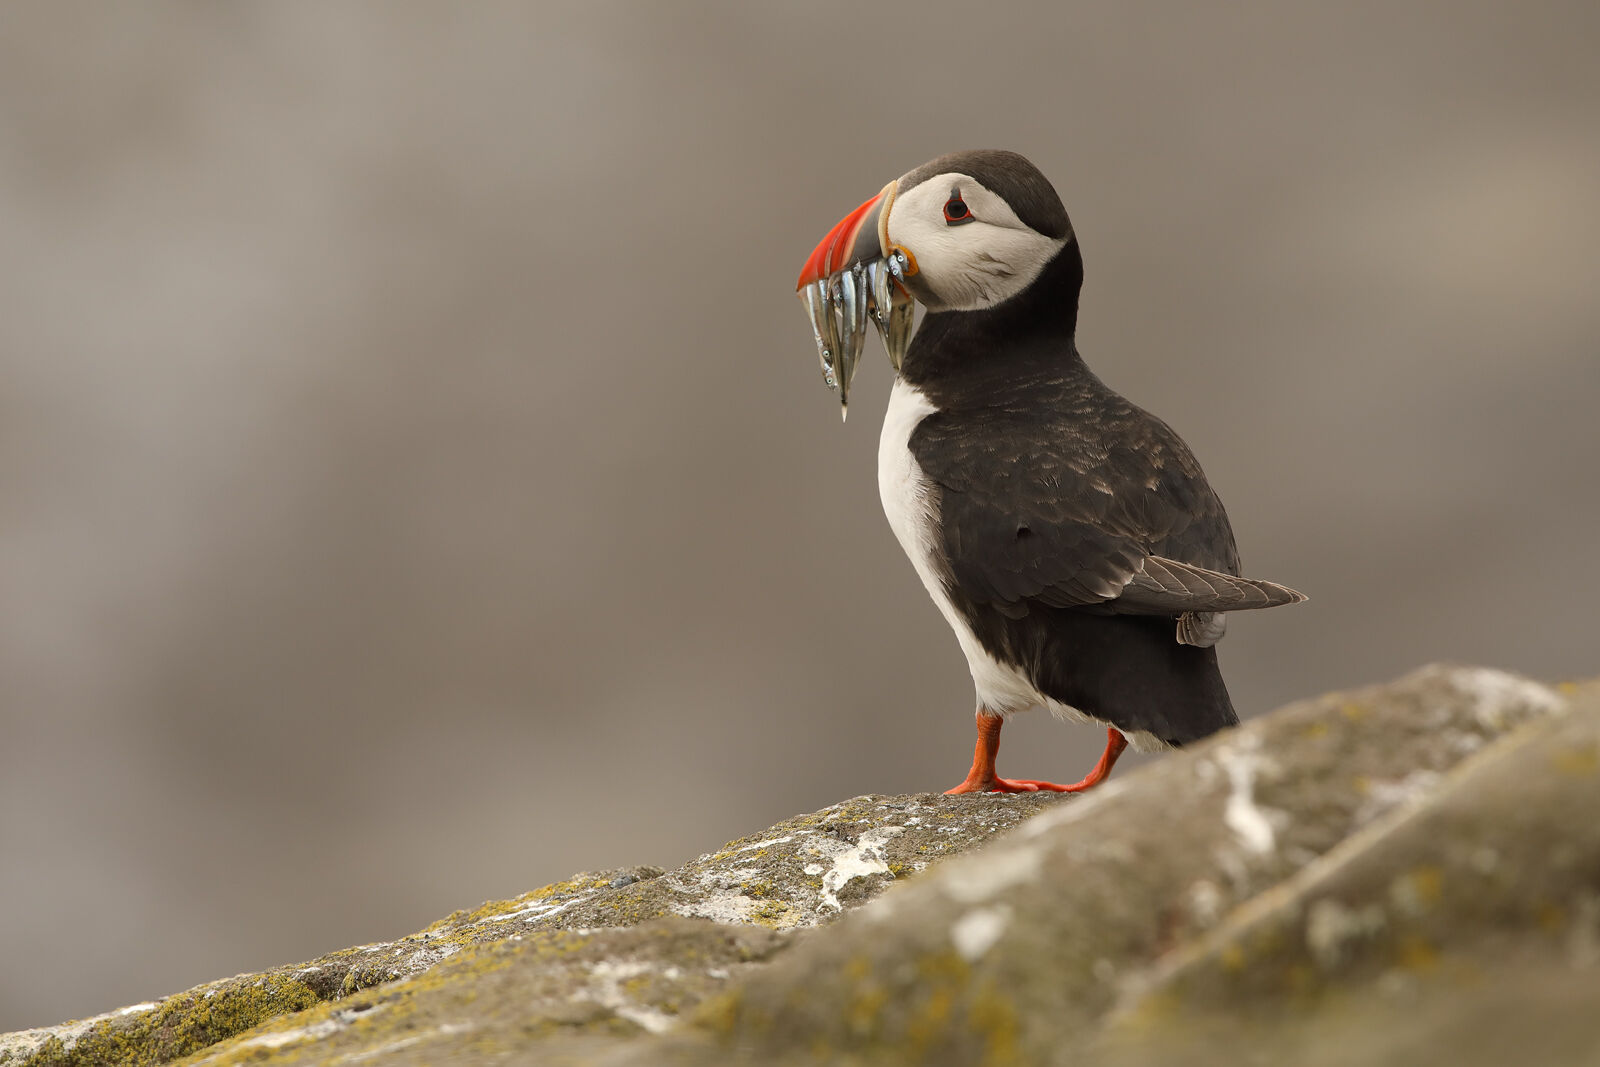 July 2021 - Puffin, Isle of May